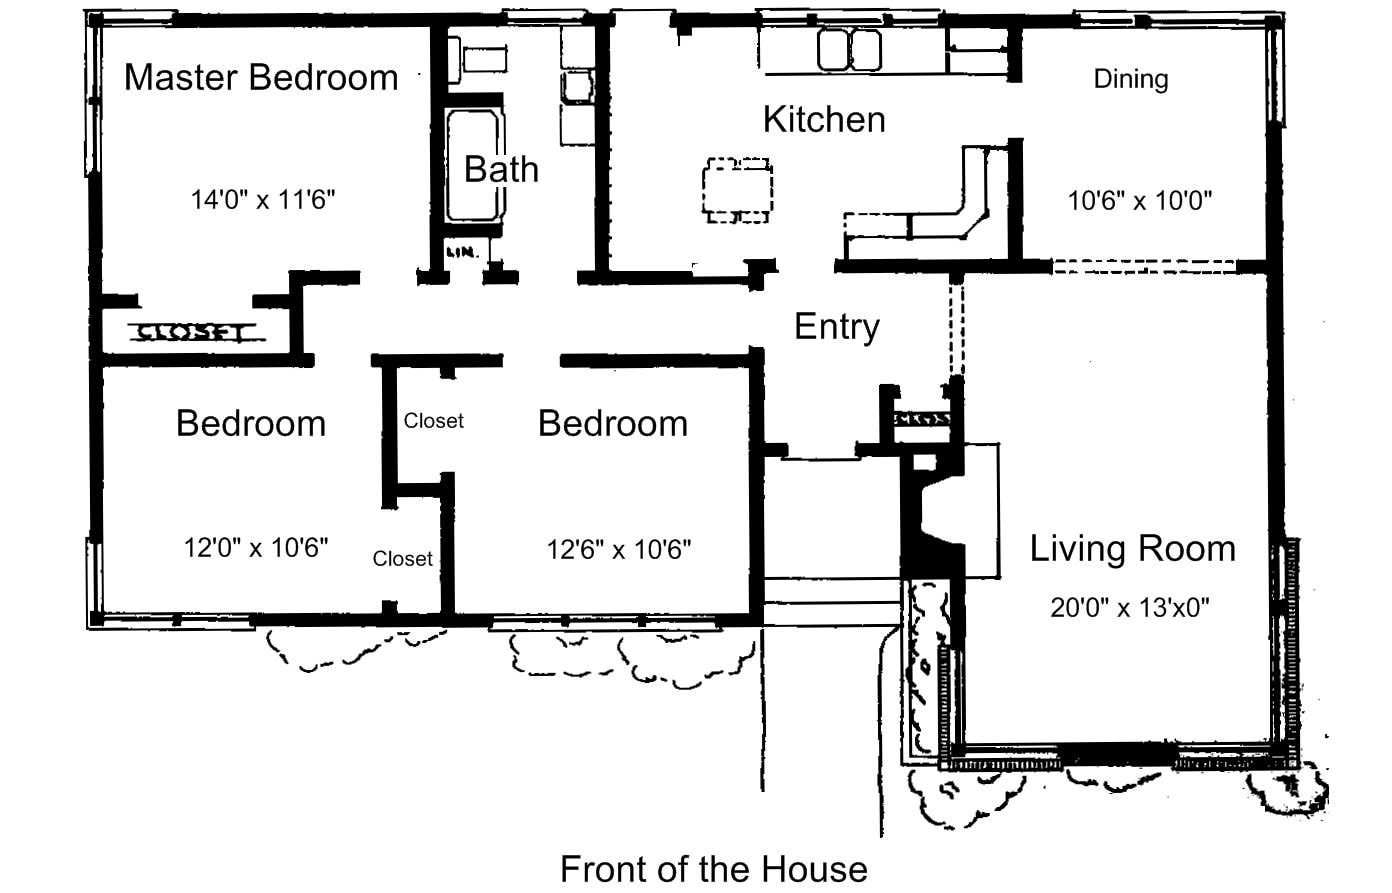 Free floor plans for small houses small house plans smallest house and tiny houses Design home free